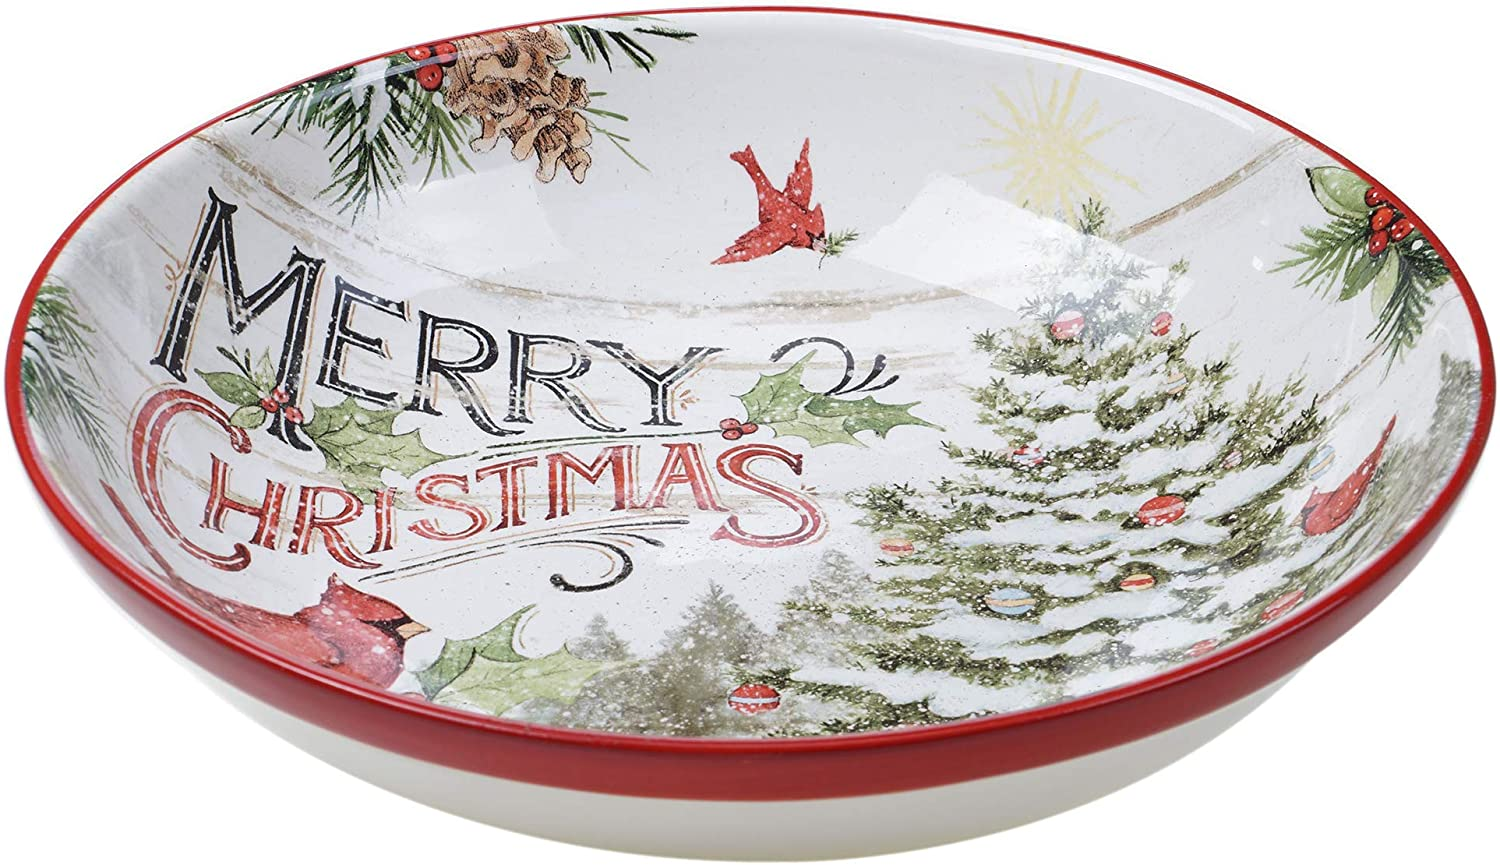 Certified International Evergreen Christmas Serving Sale Clearance SALE! Limited time! special price Multic Bowl